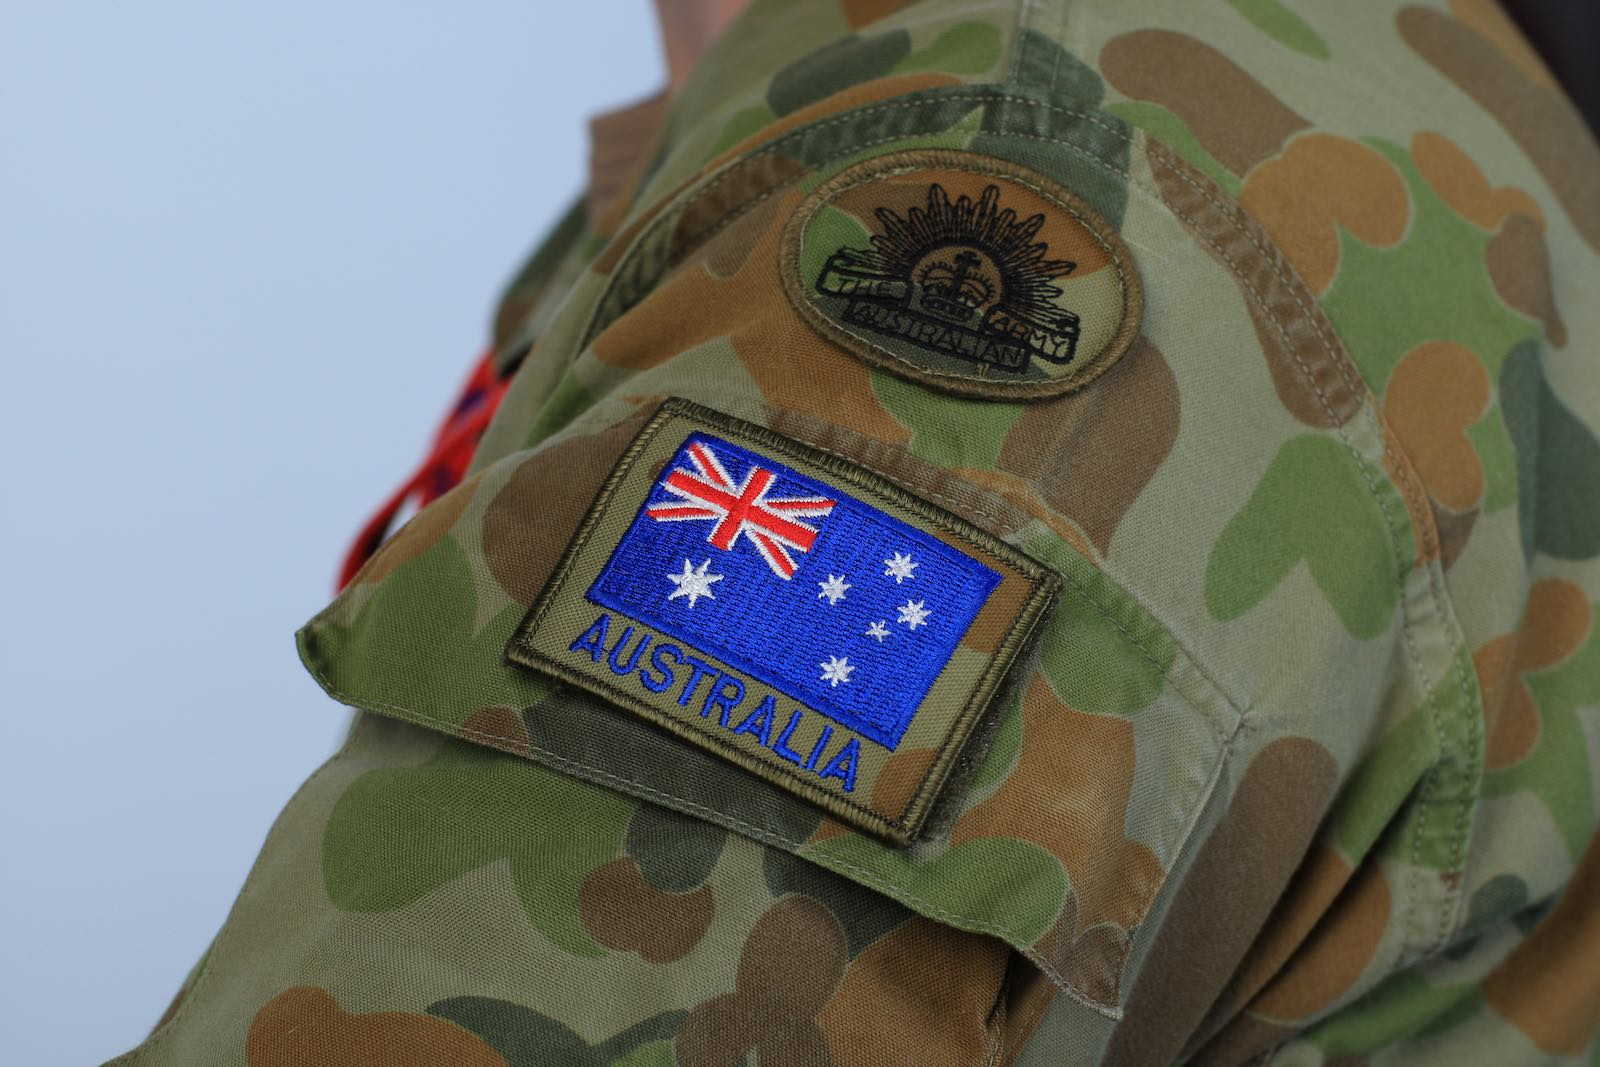 A temporarily larger cohort of senior officers and senior soldiers are moving out of military service (Photo: Department of Defence)